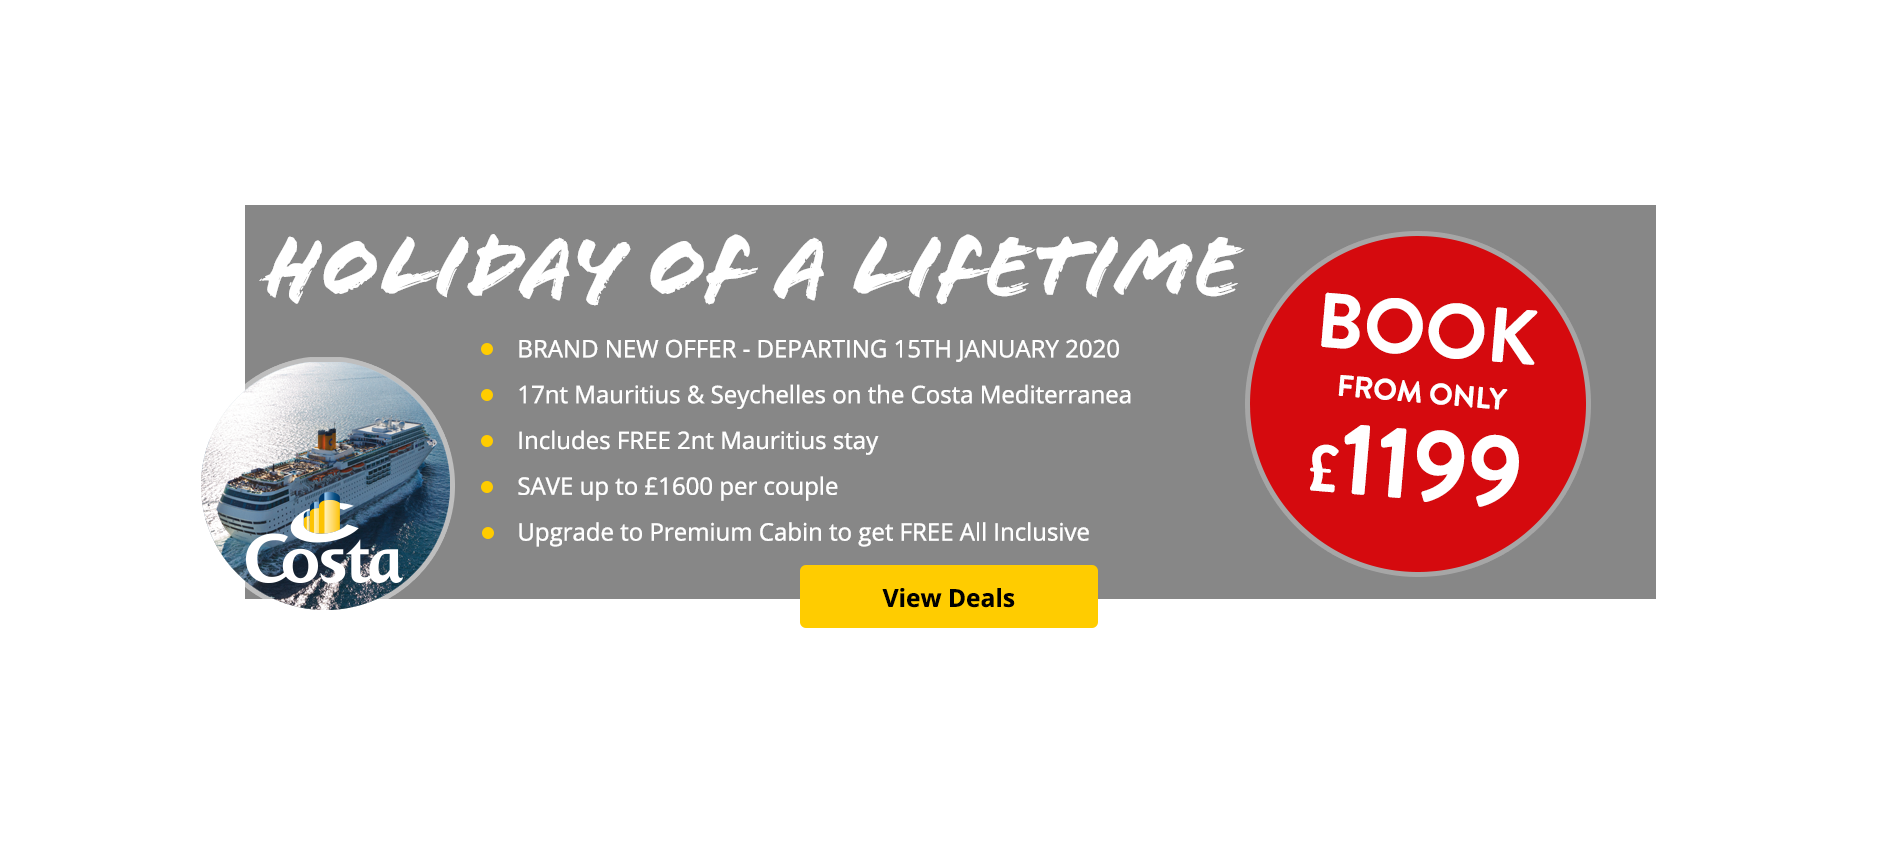 Check out this amazing holiday of a lifetime from only £1199. Mauritius & the Seychelles aboard the Costa Mediterranea. Flights included.